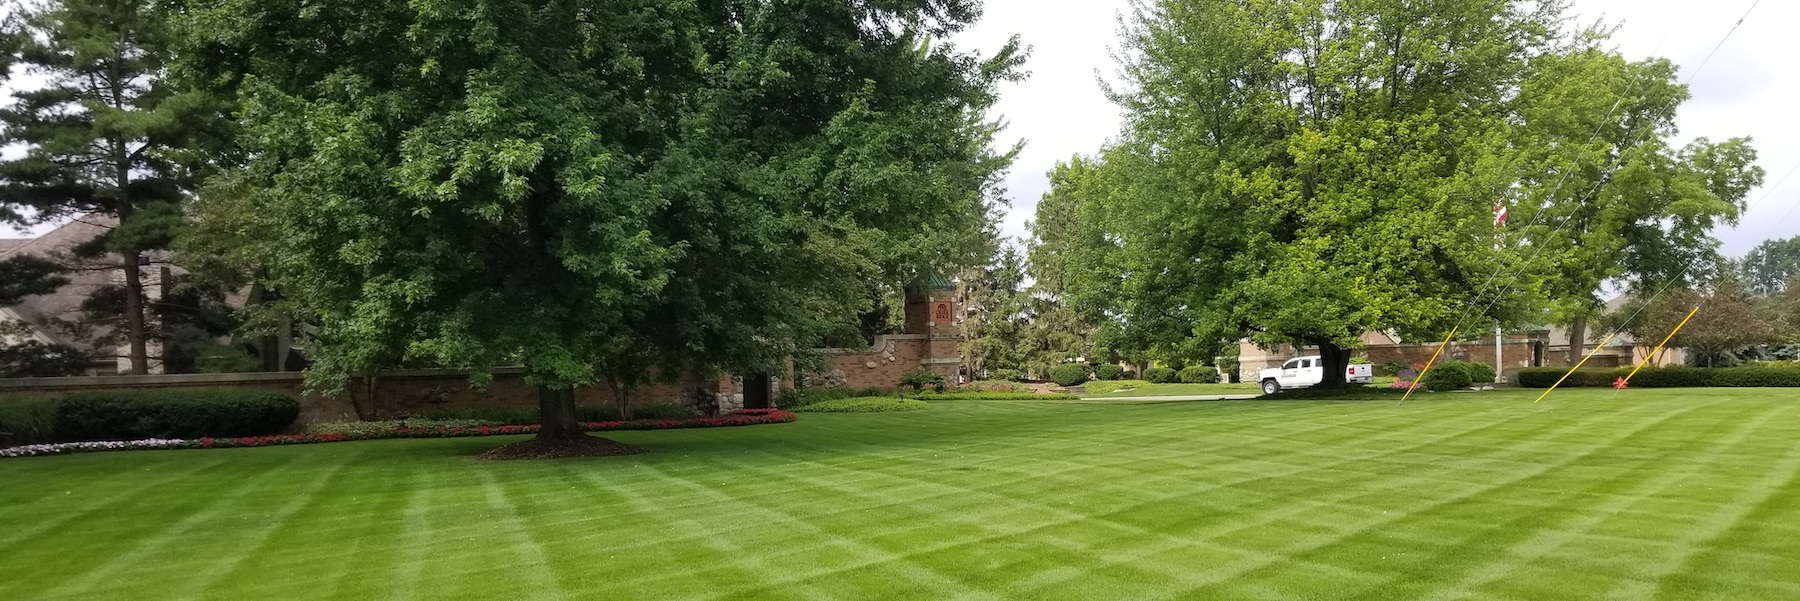 Ever So Green | Fertiliztion & Weed Control